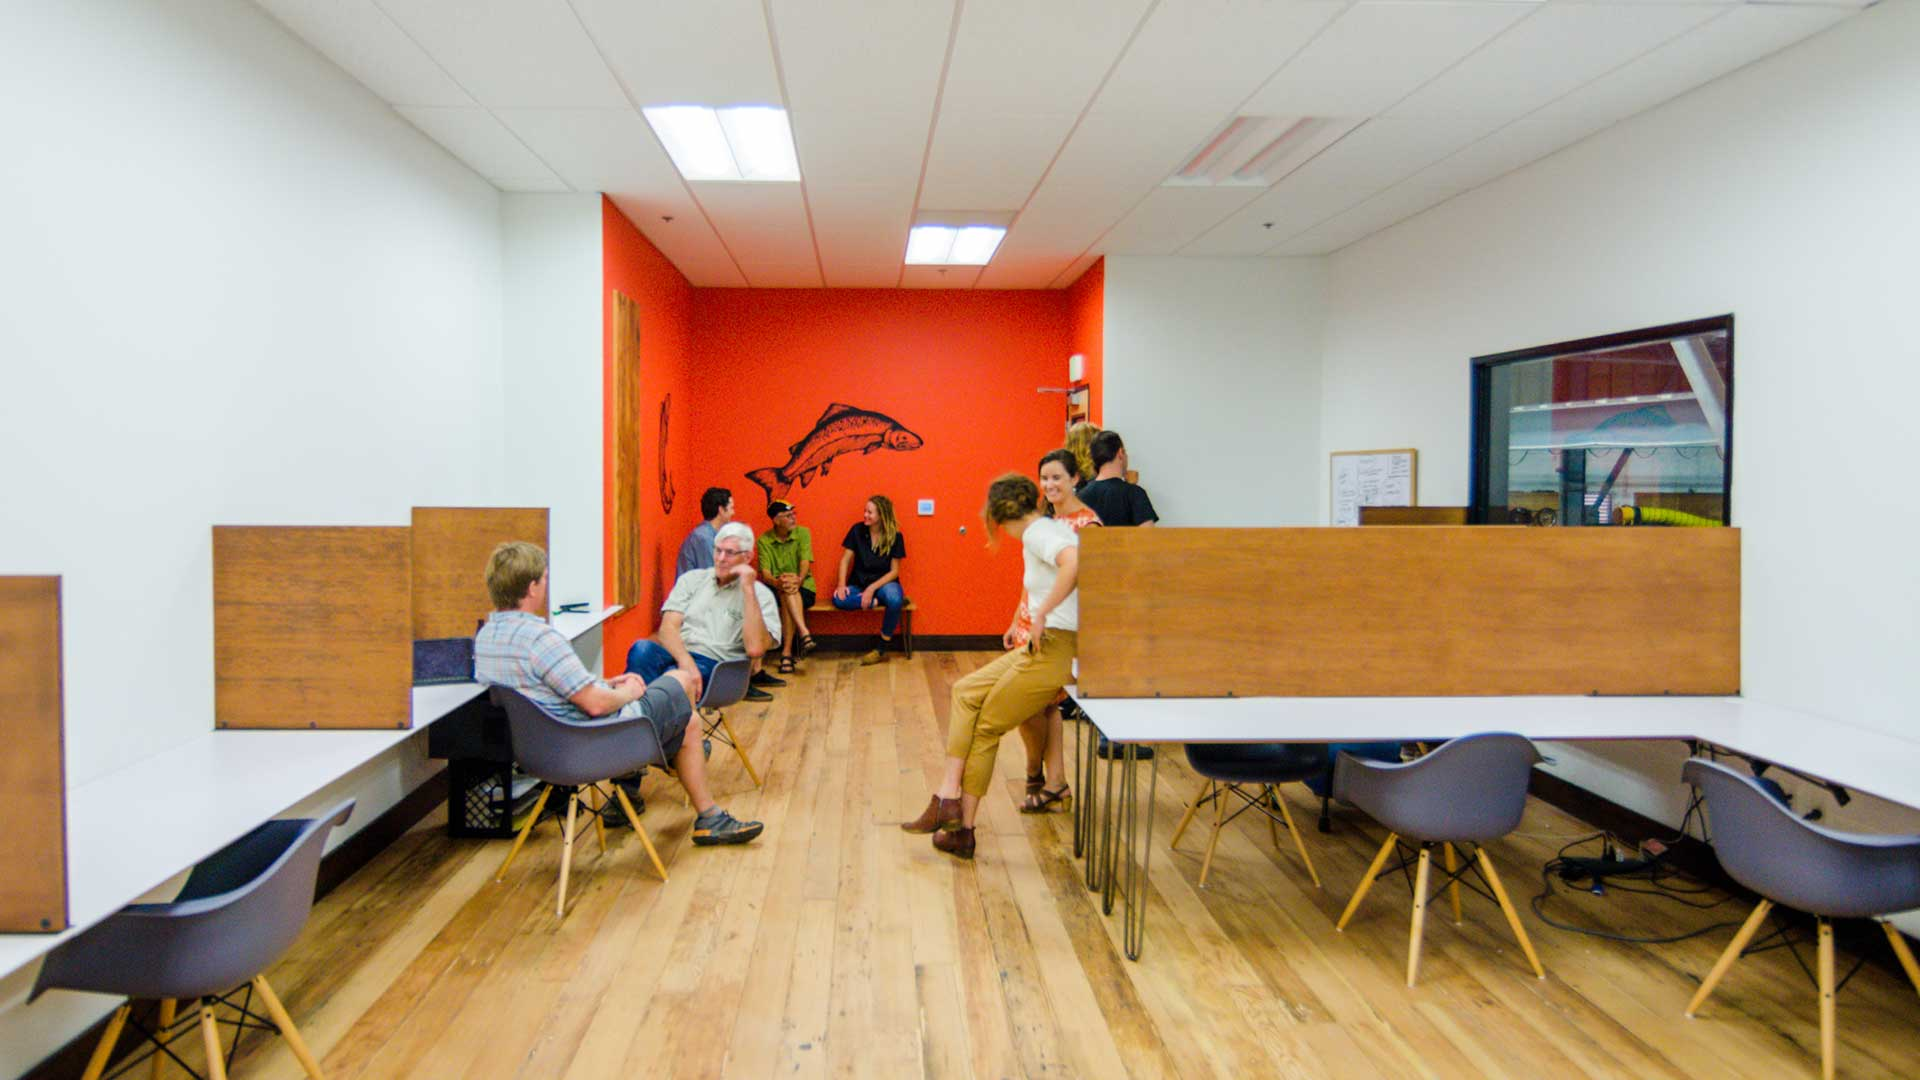 several people sit talking on chairs and tables in open office space